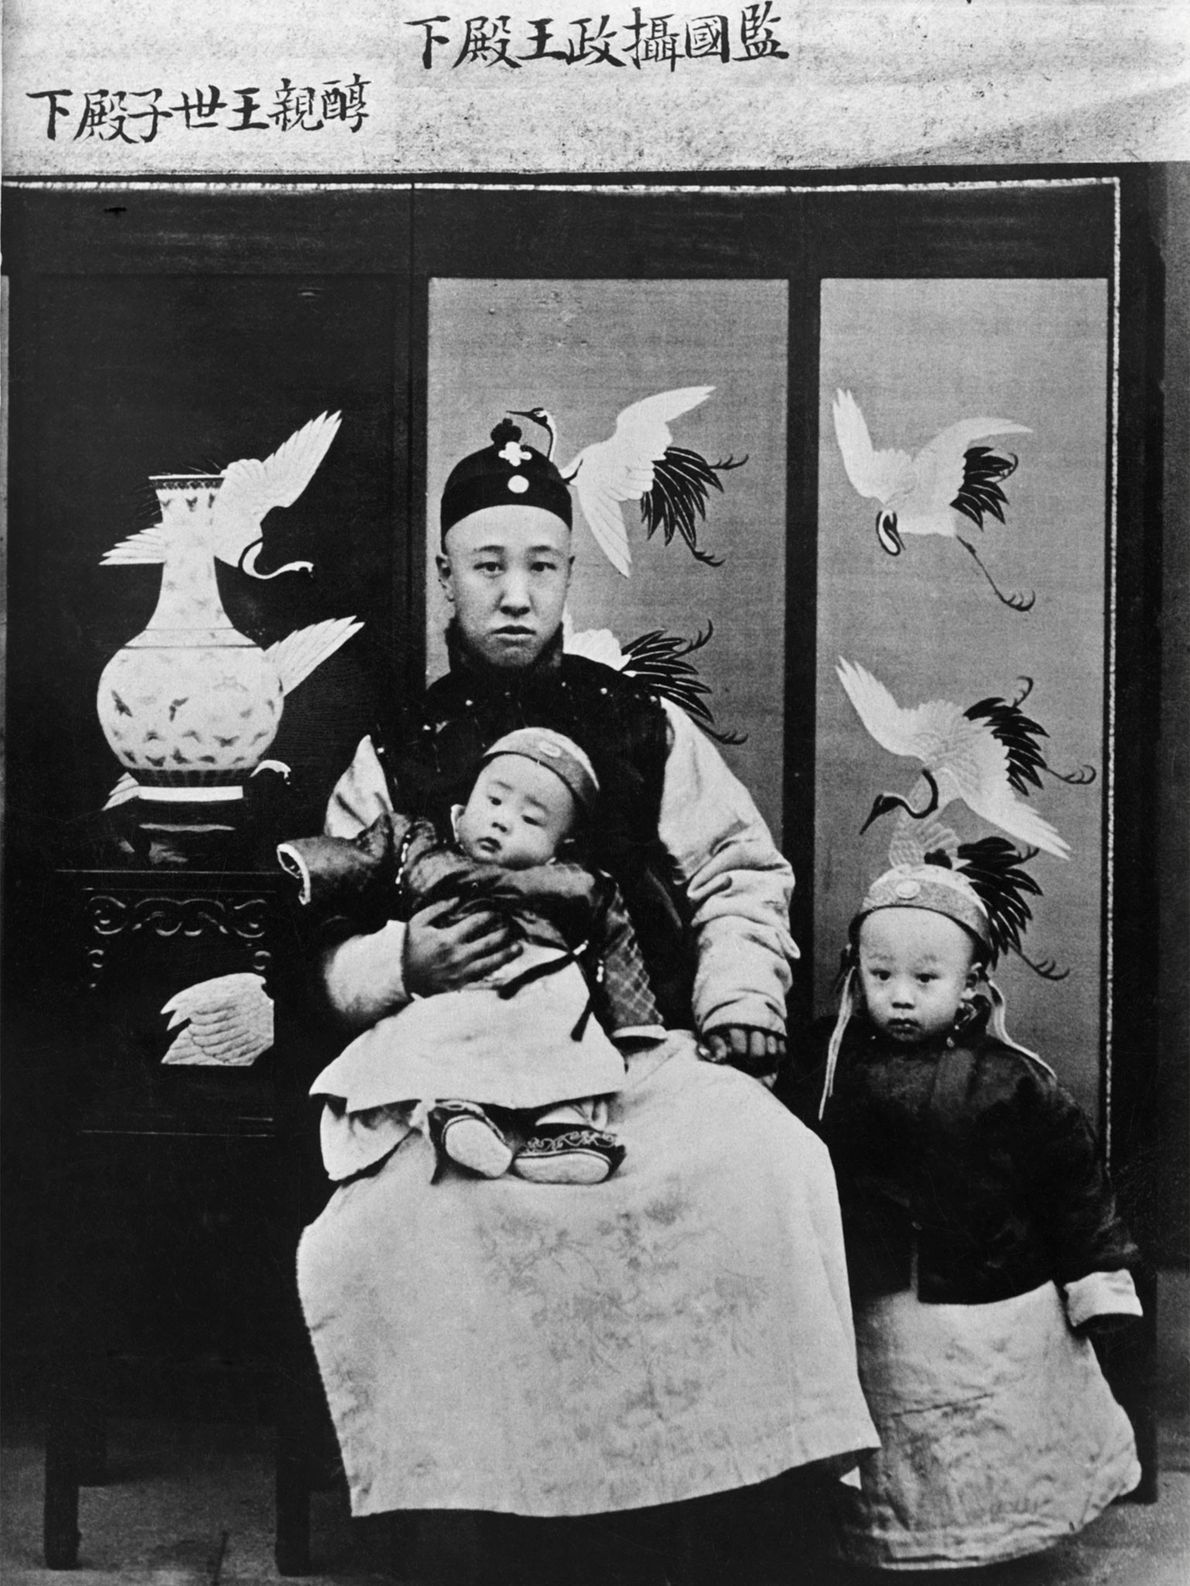 Prince Chun, a regent of China, holds his son, Emperor Hsuan Tung, in the Liaoning Province. ...